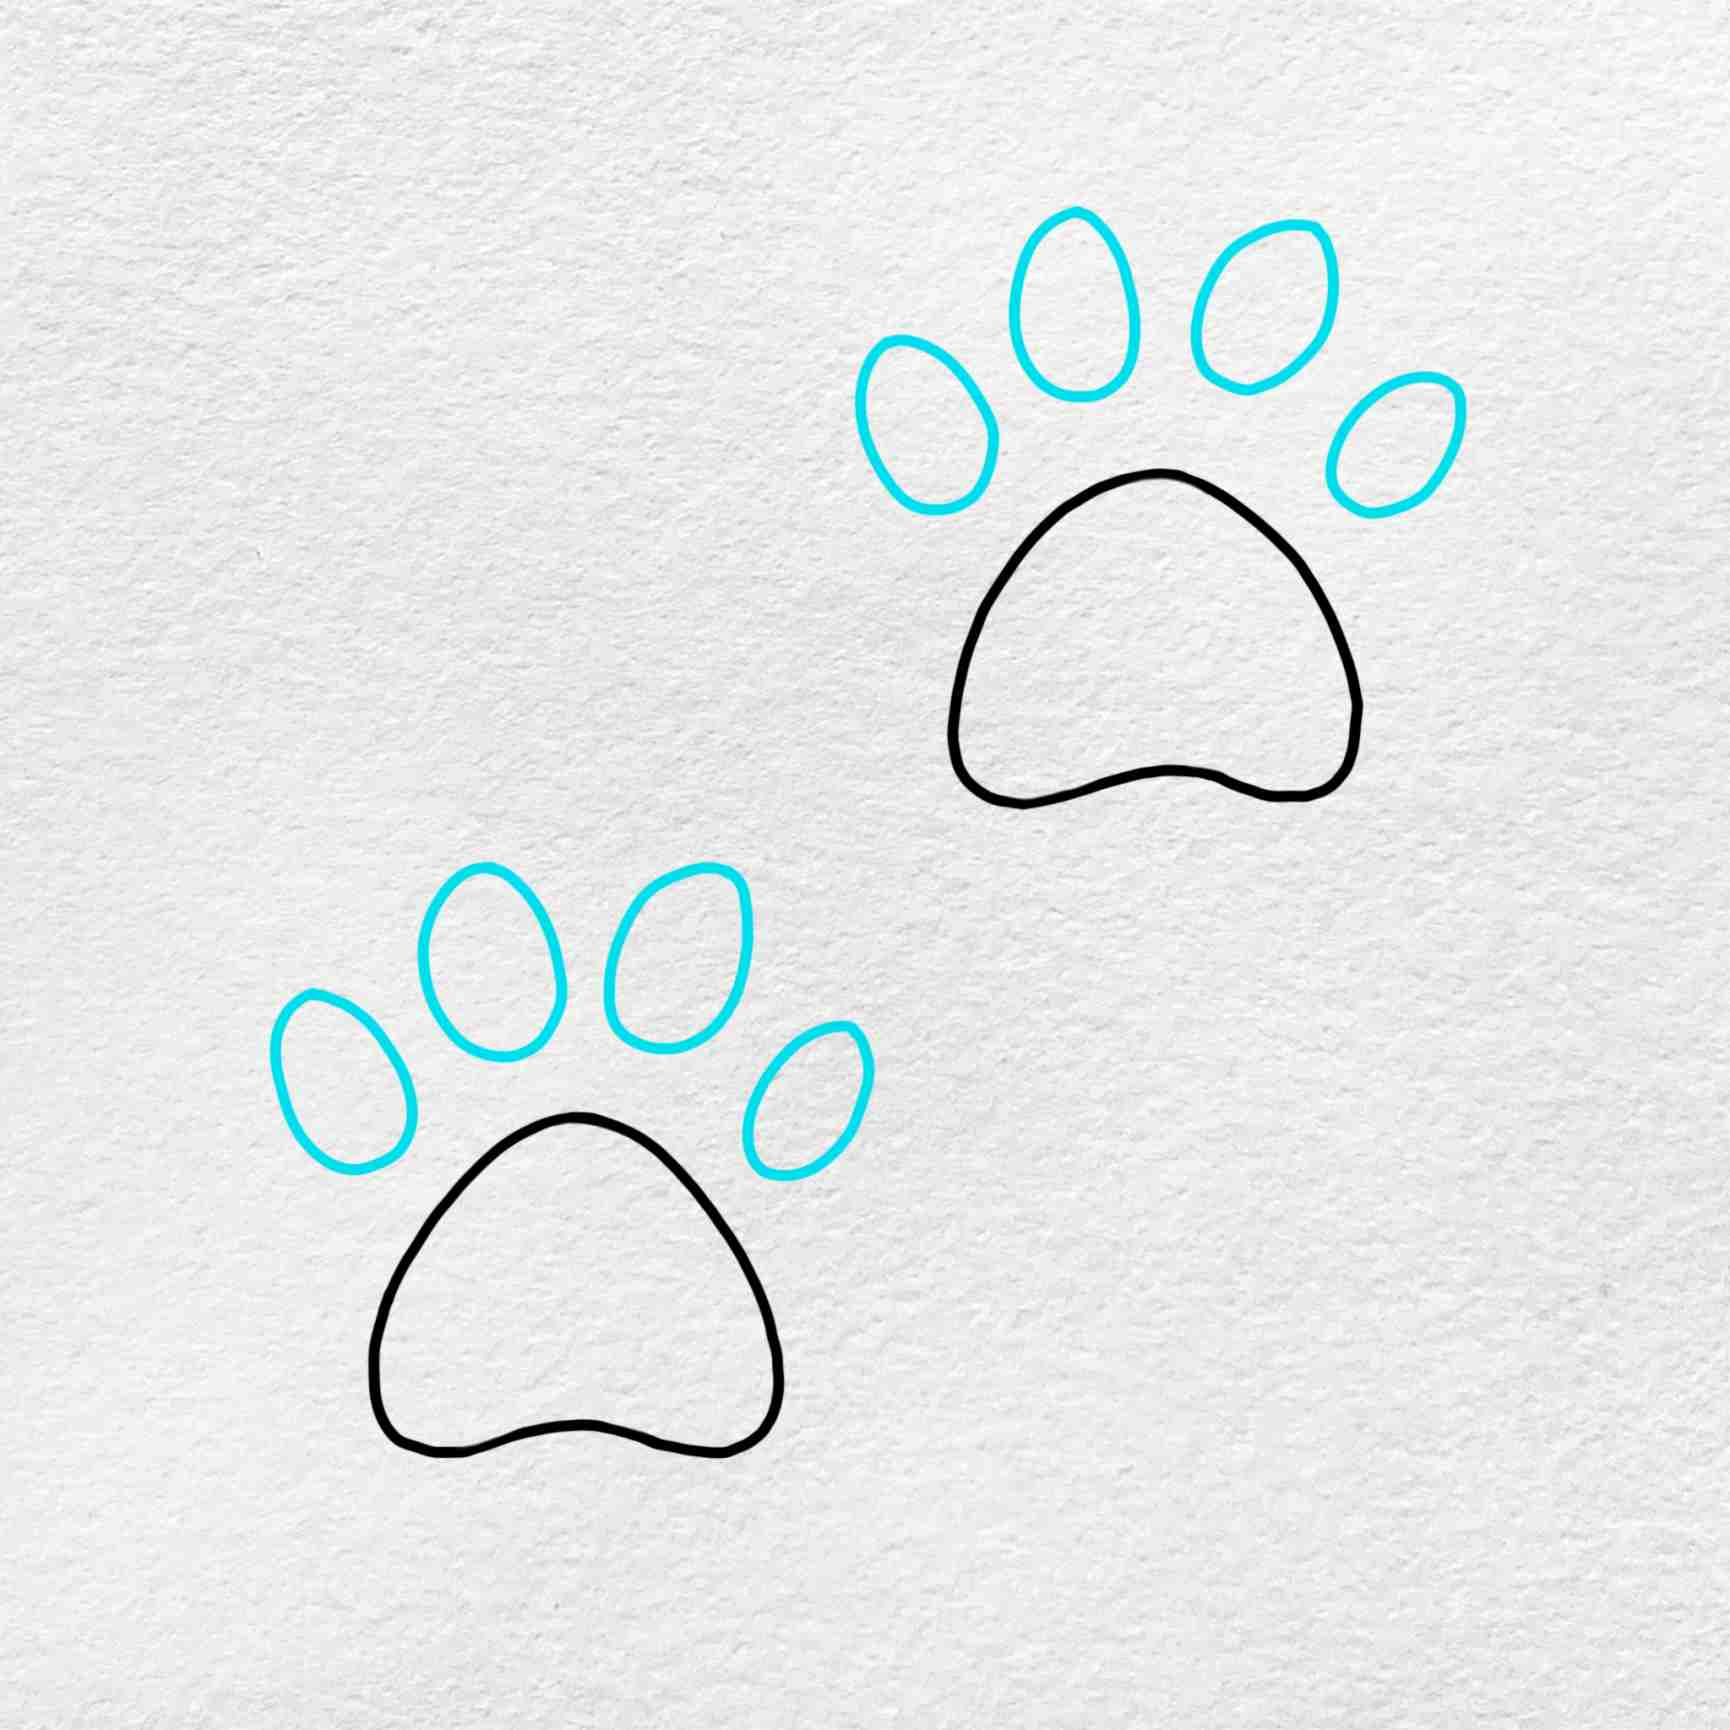 How To Draw A Paw Print: Step 5